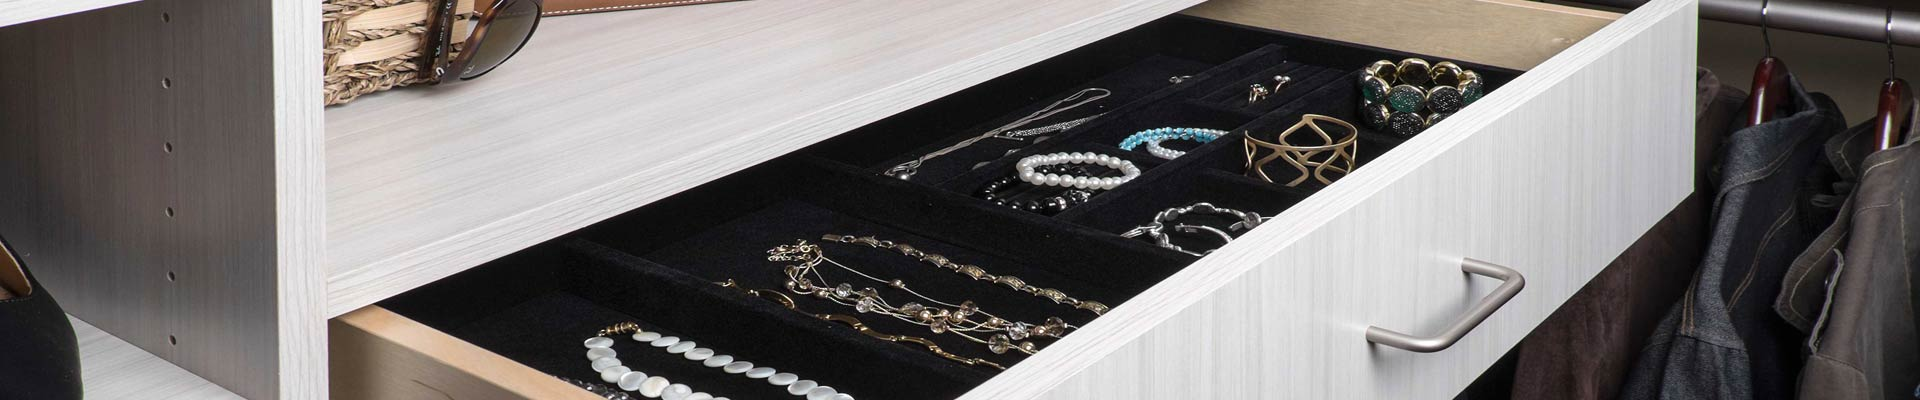 Black-Velvet-Jewelry-Insert-in-Arctic-Flat-Panel-Drawer-4-4-14